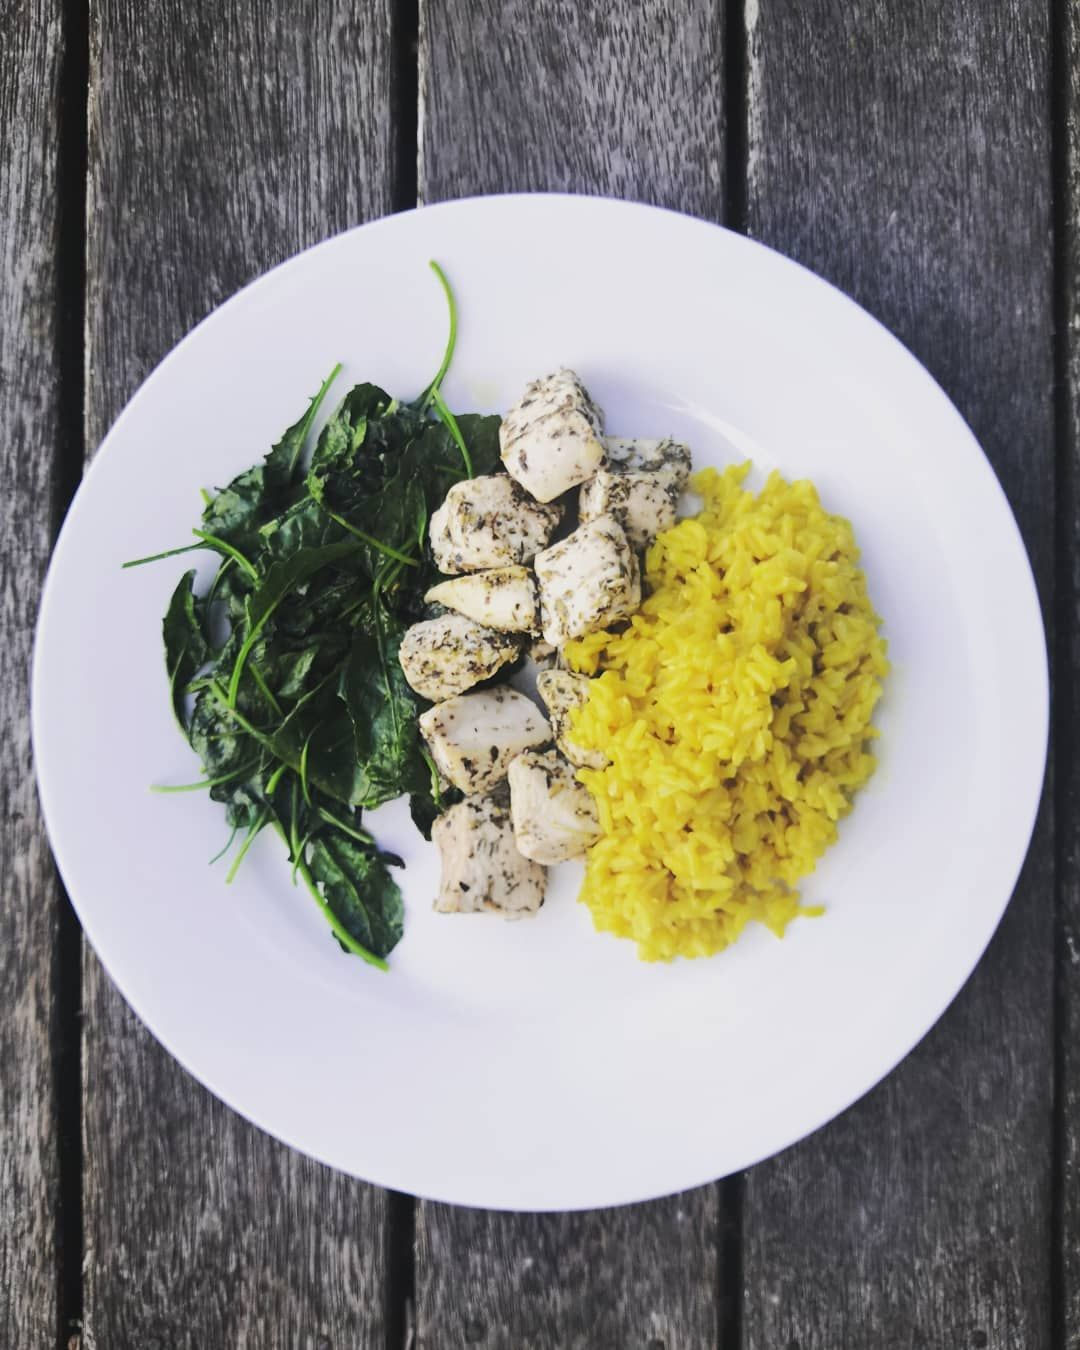 THIS MEAL WAS TAKEN FROM MY F45 MEAL PLAN Free range chicken, flavoured with Italian herbs 🐔 Brown rice, flavoured with curry powder 🍴 Sautéed kale with sea salt and pepper 🥬 @f45_training_howick